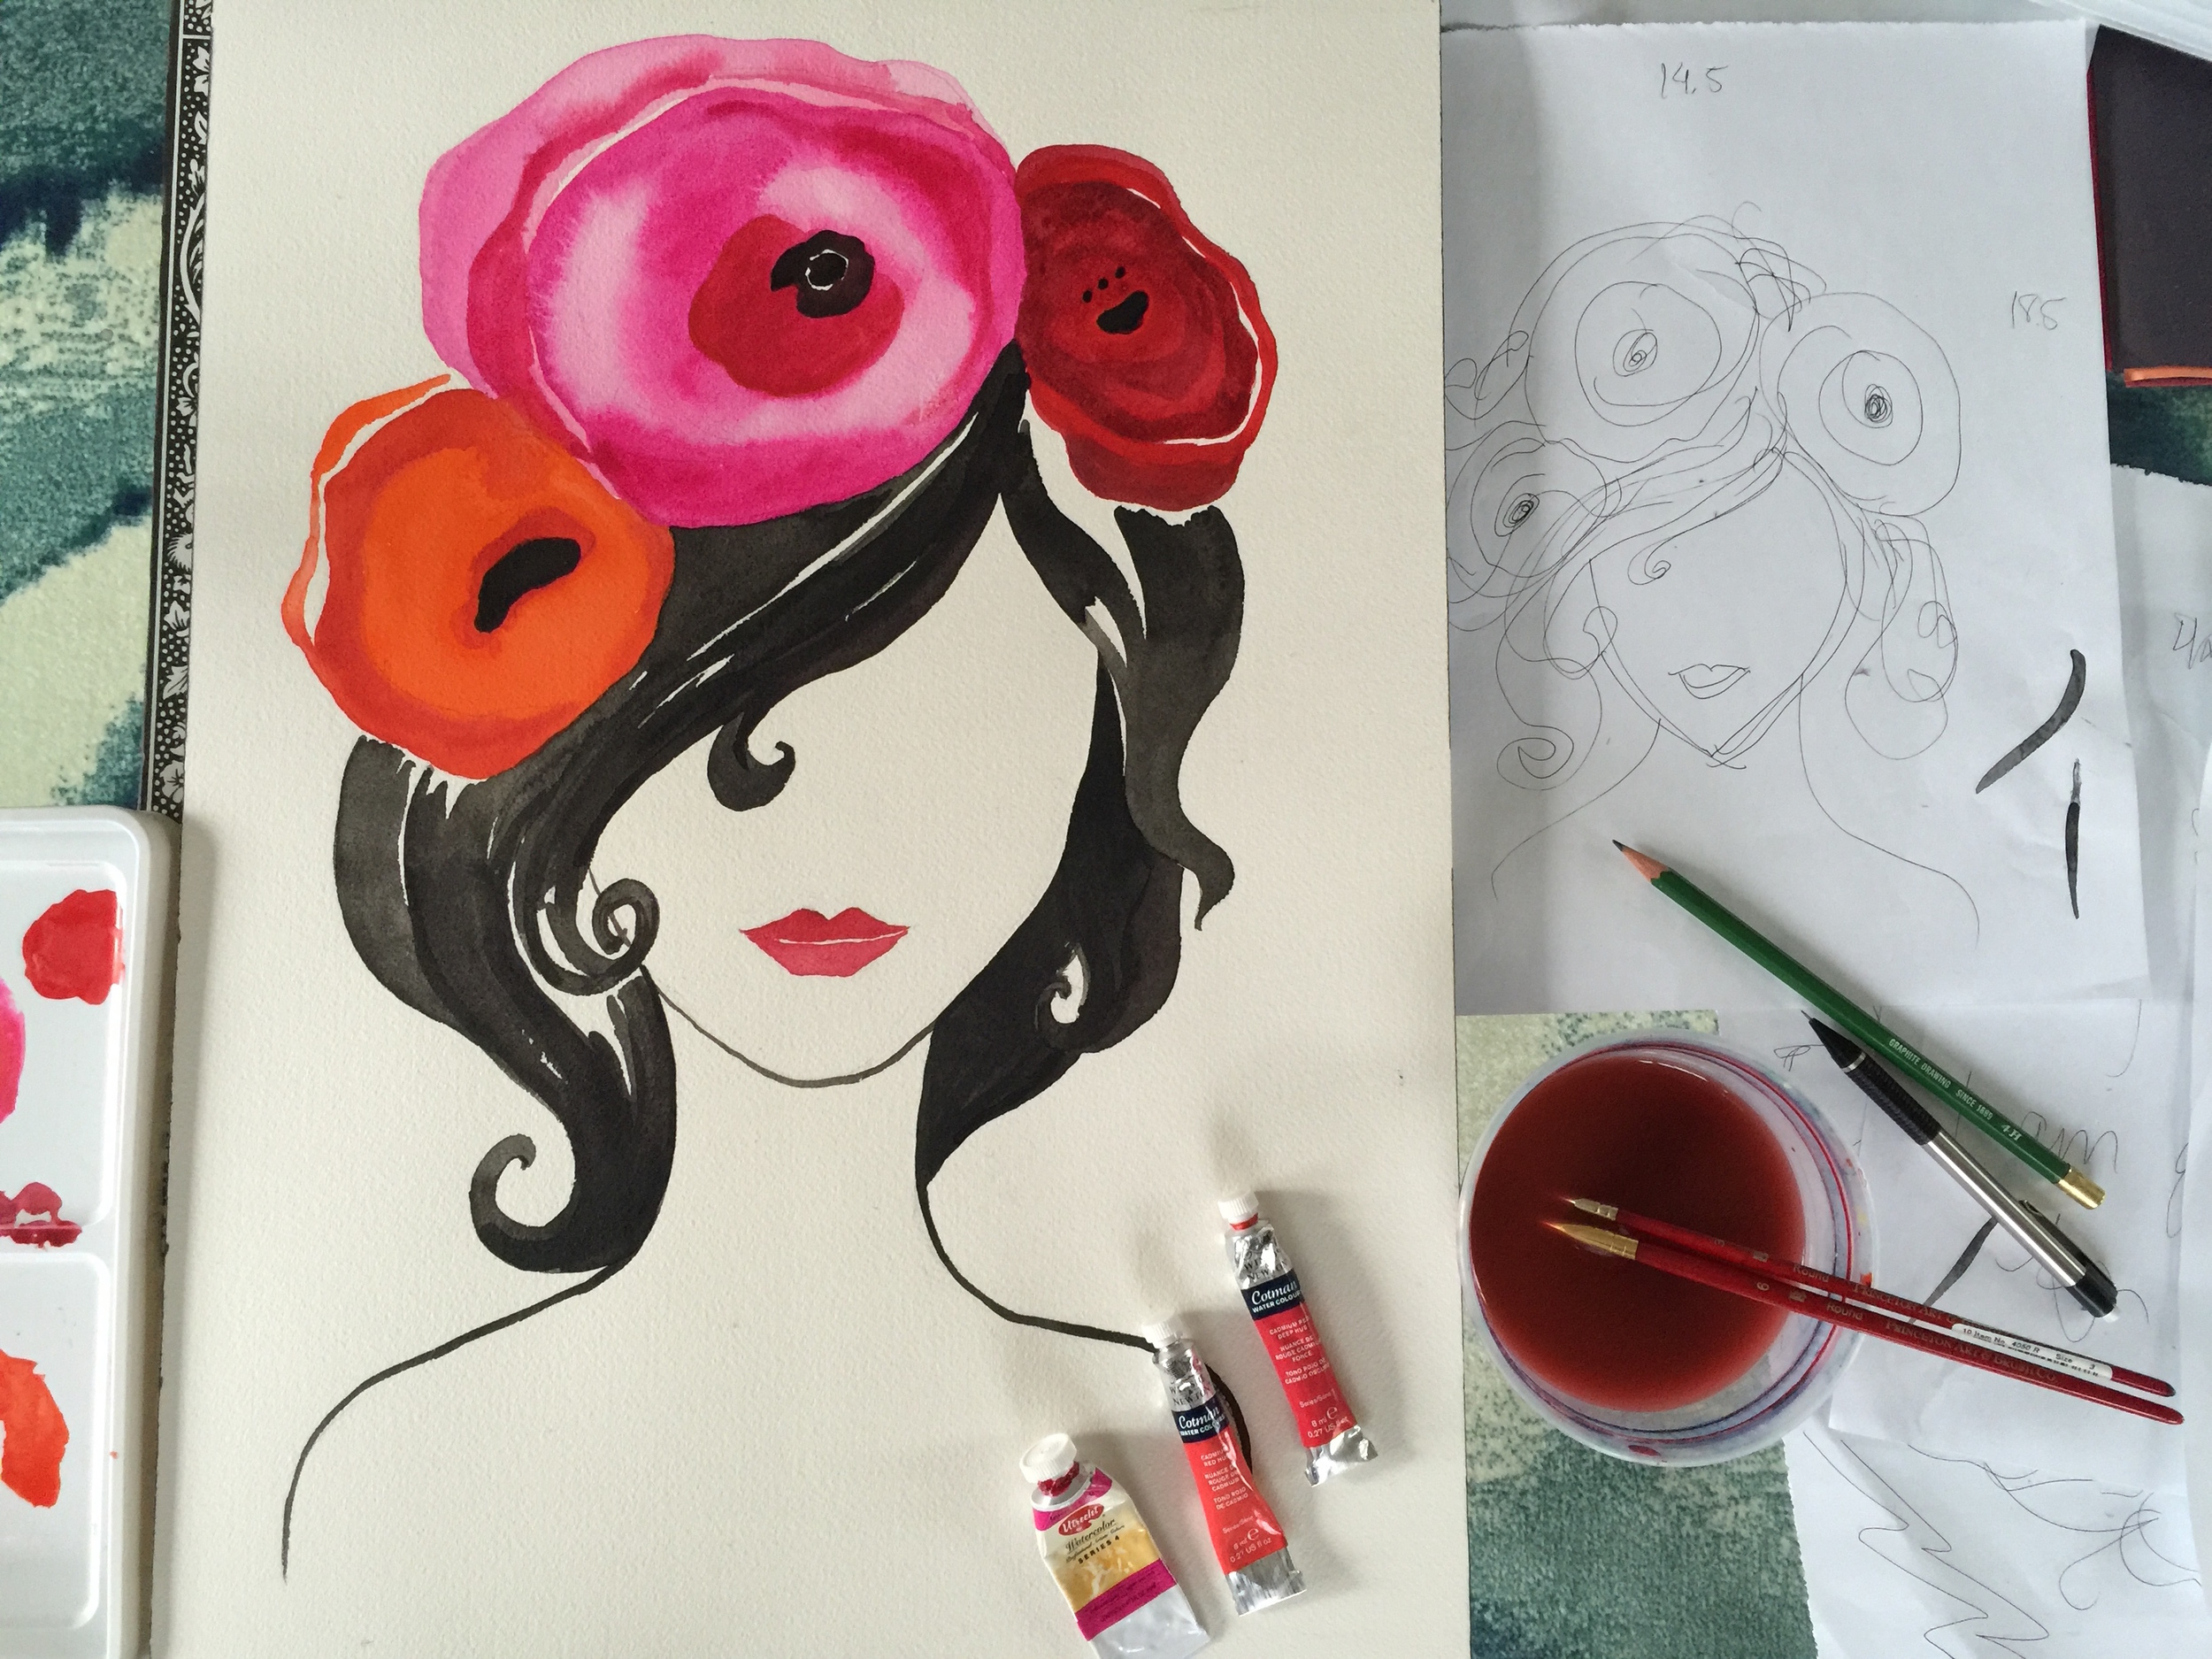 ing_Design_Process_Watercolor_Floral_Flowers_Baby_kids_room_Ceci_style_2.JPG